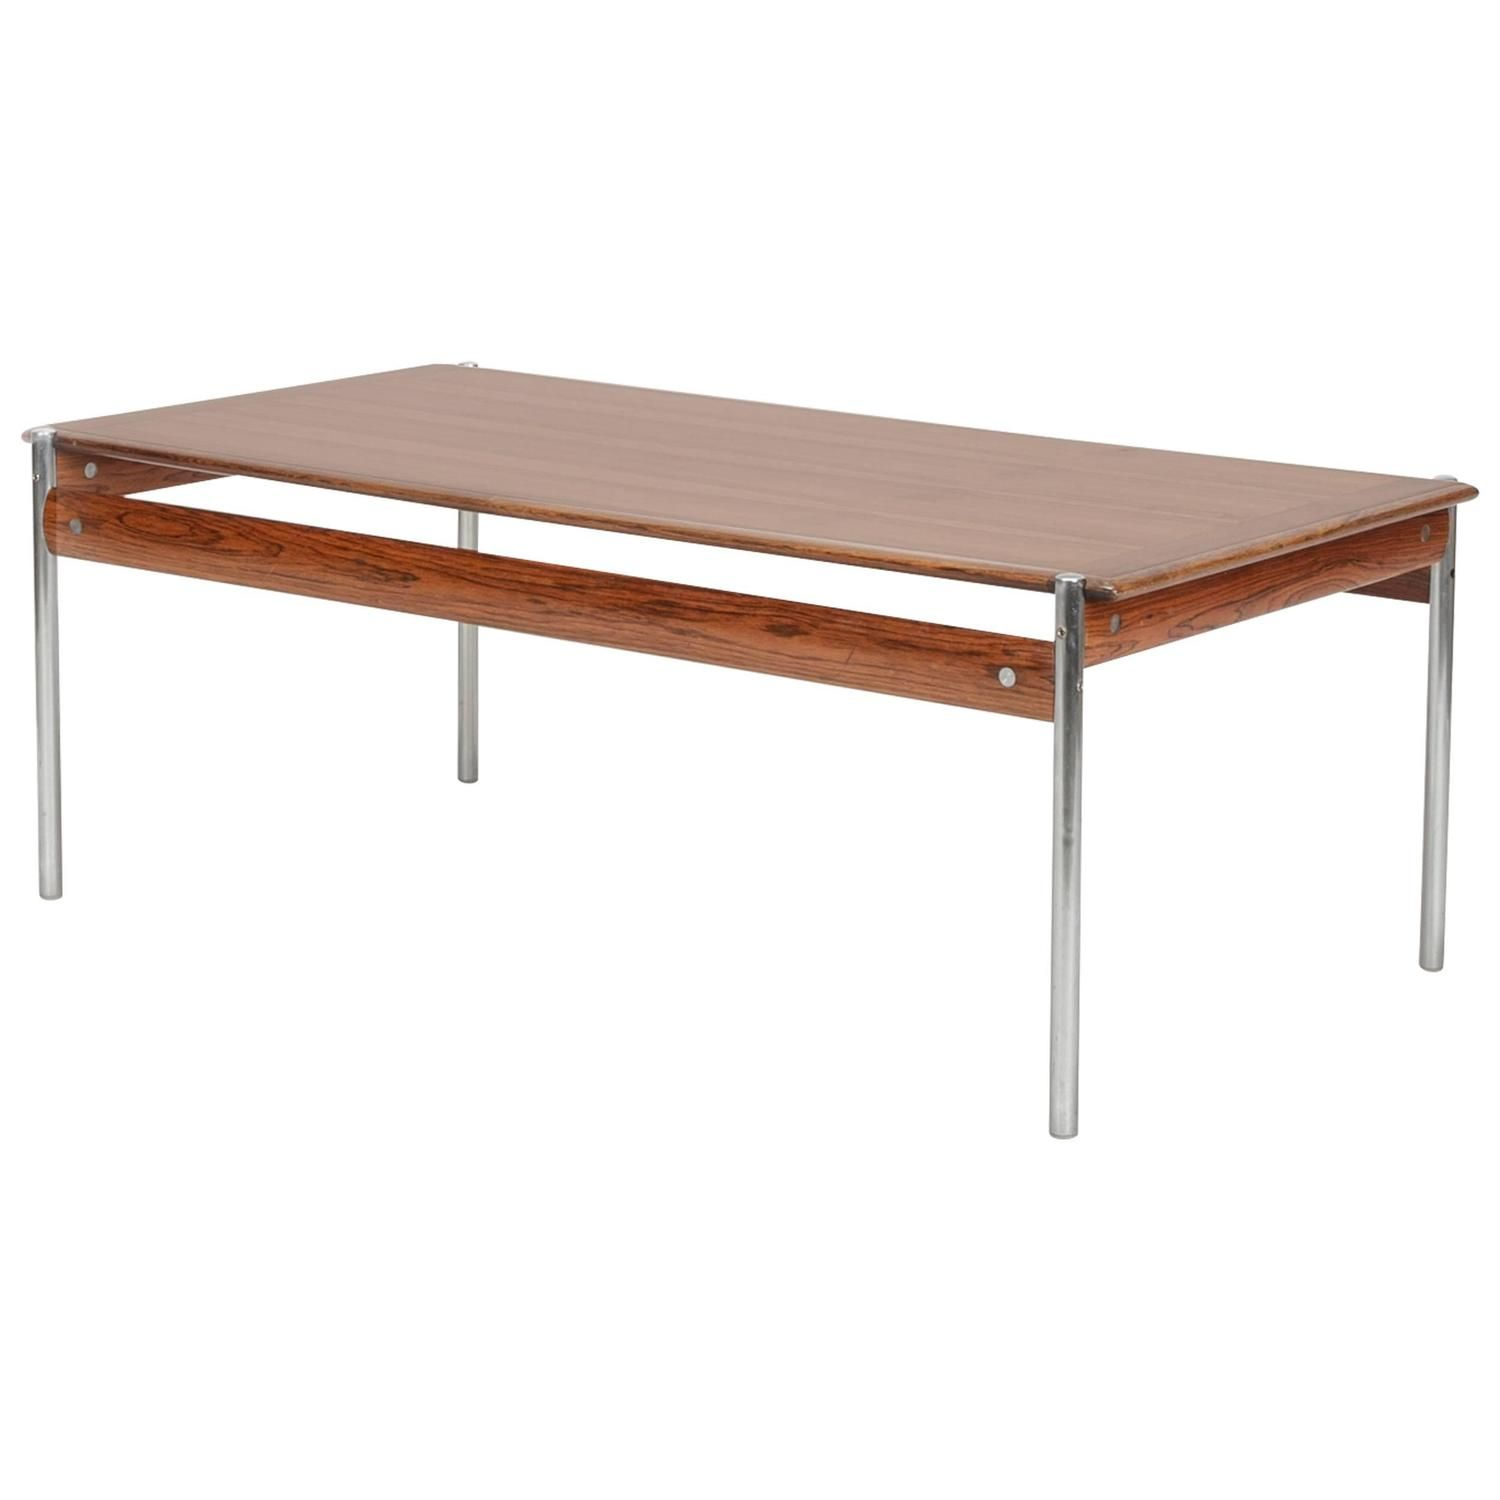 Sven Ivar Dysthe Rosewood and Steel Coffee Table Model 1001 for Dokka Mobler Norway ca.1959